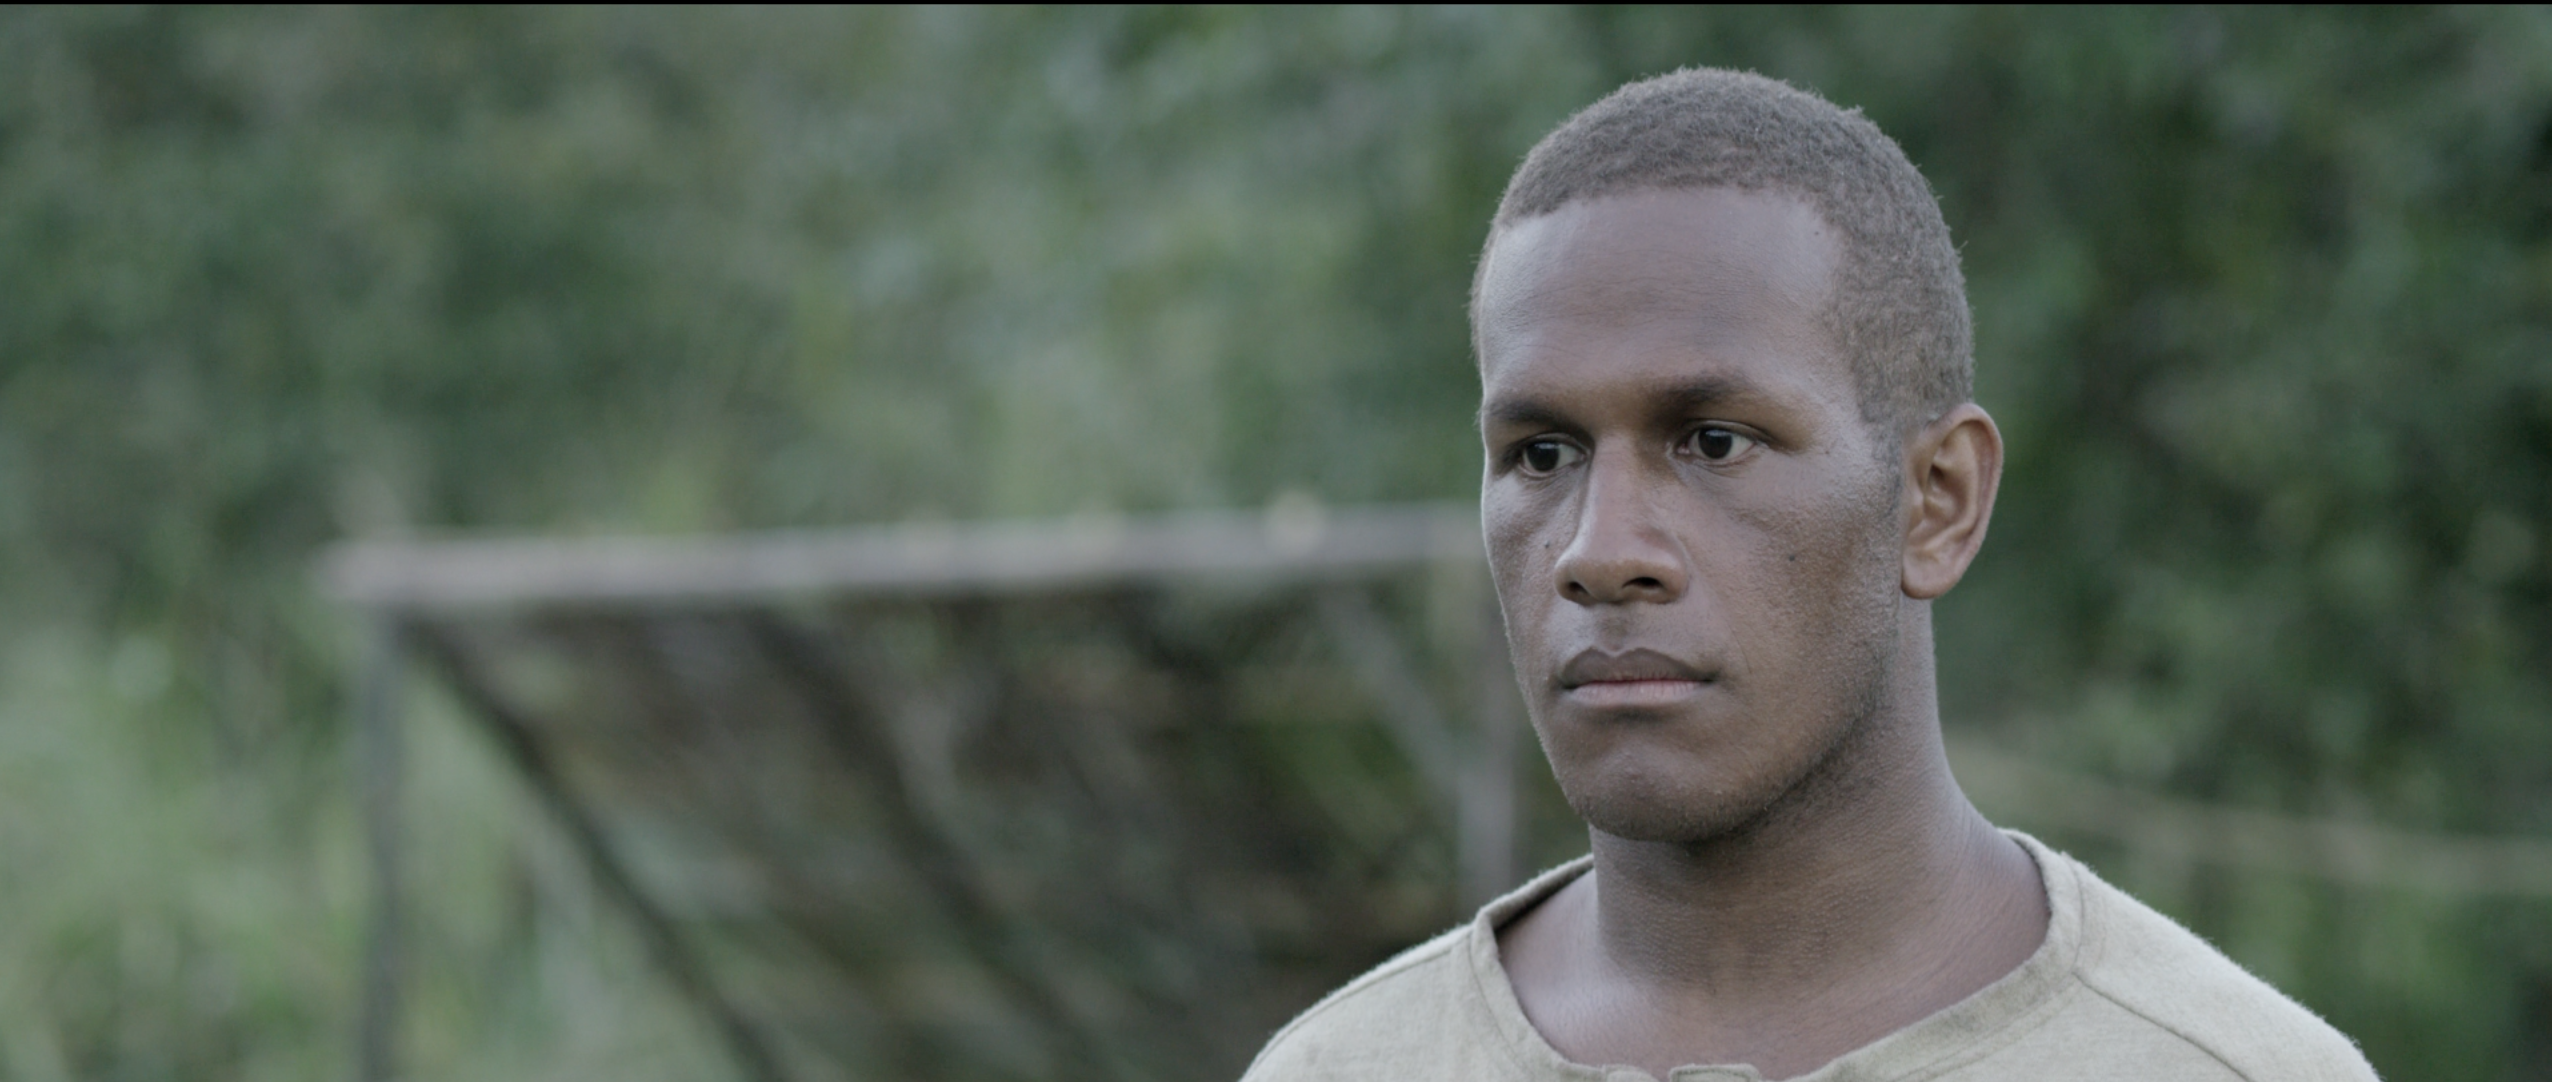 BLACKBIRD Australian Television Premiere & Native Slam Short Screens at imagineNATIVE